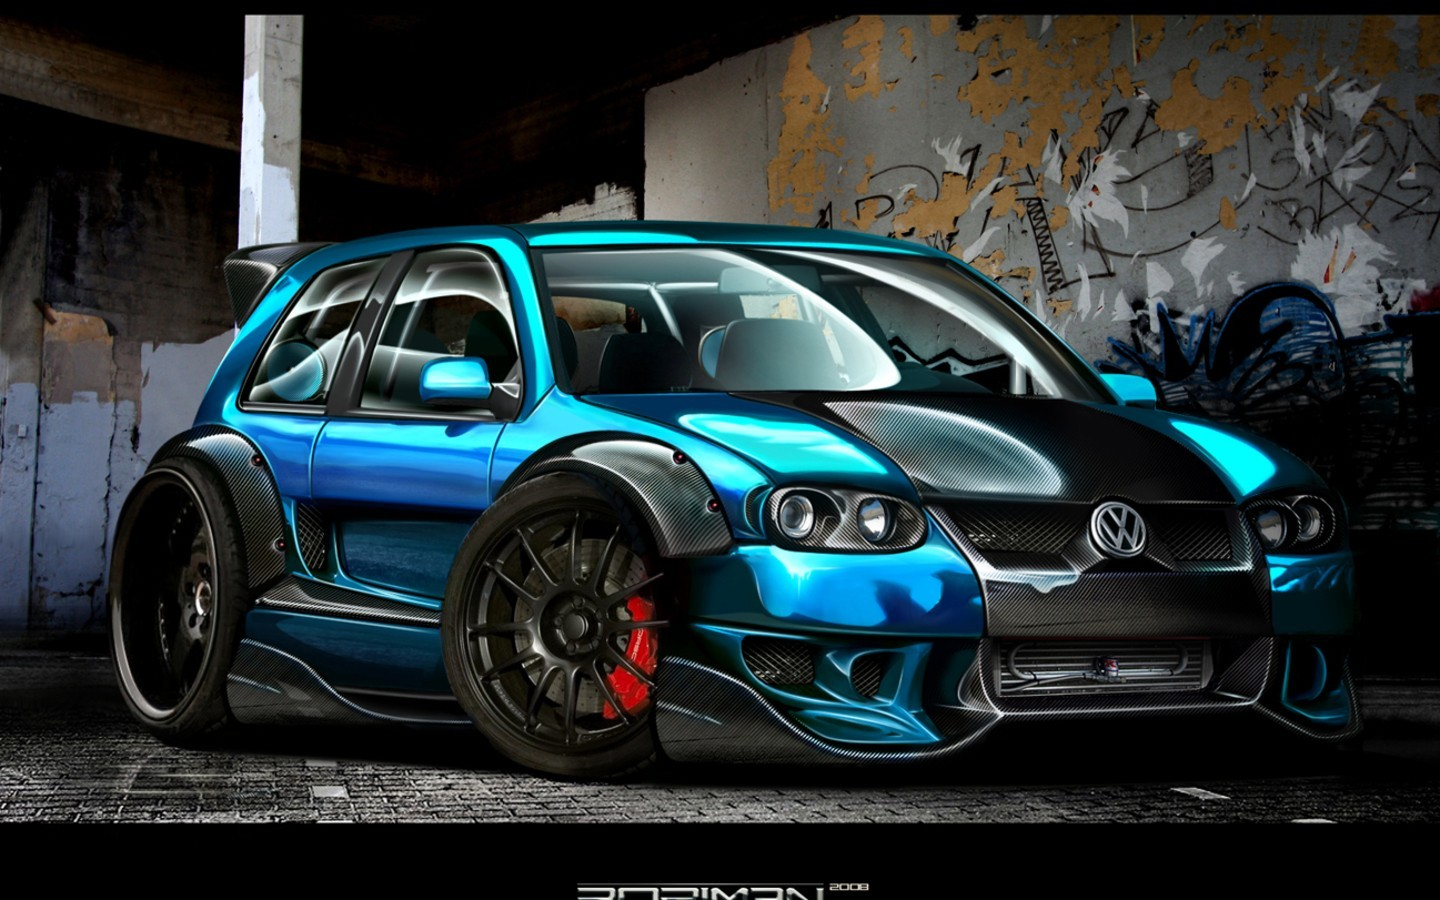 cars vehicles Volkswagen virtual HD Wallpaper